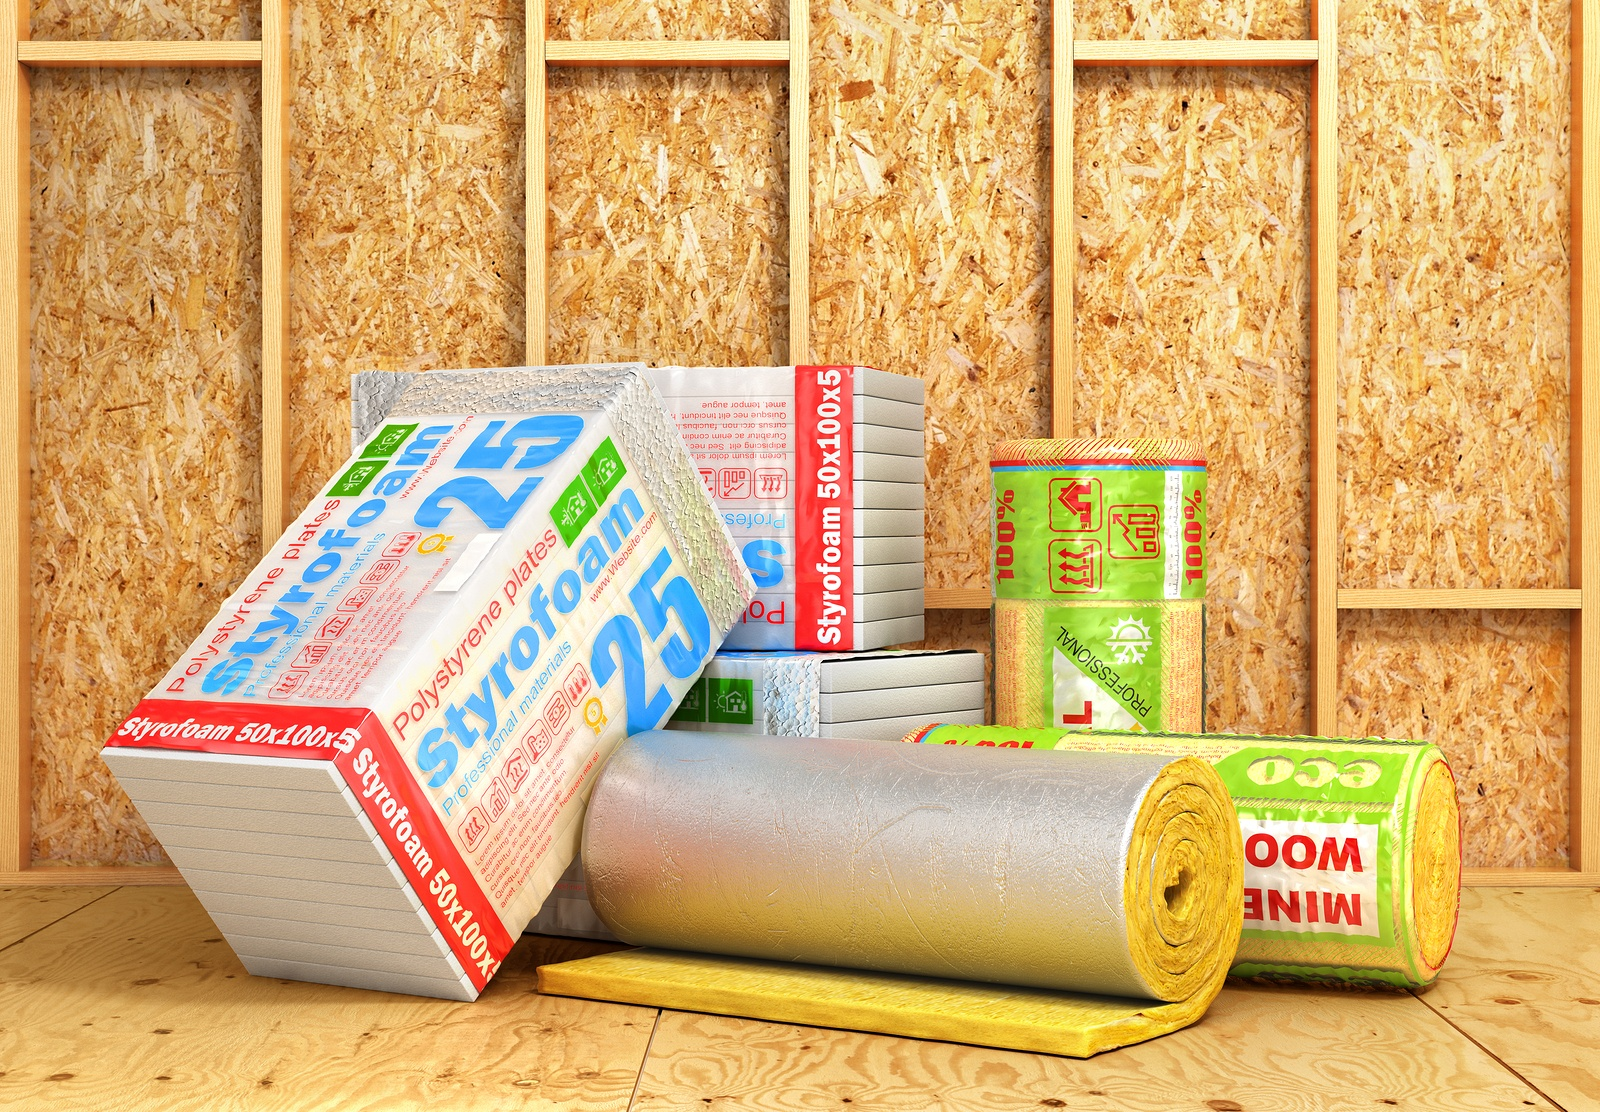 Insulation R Value From the Top